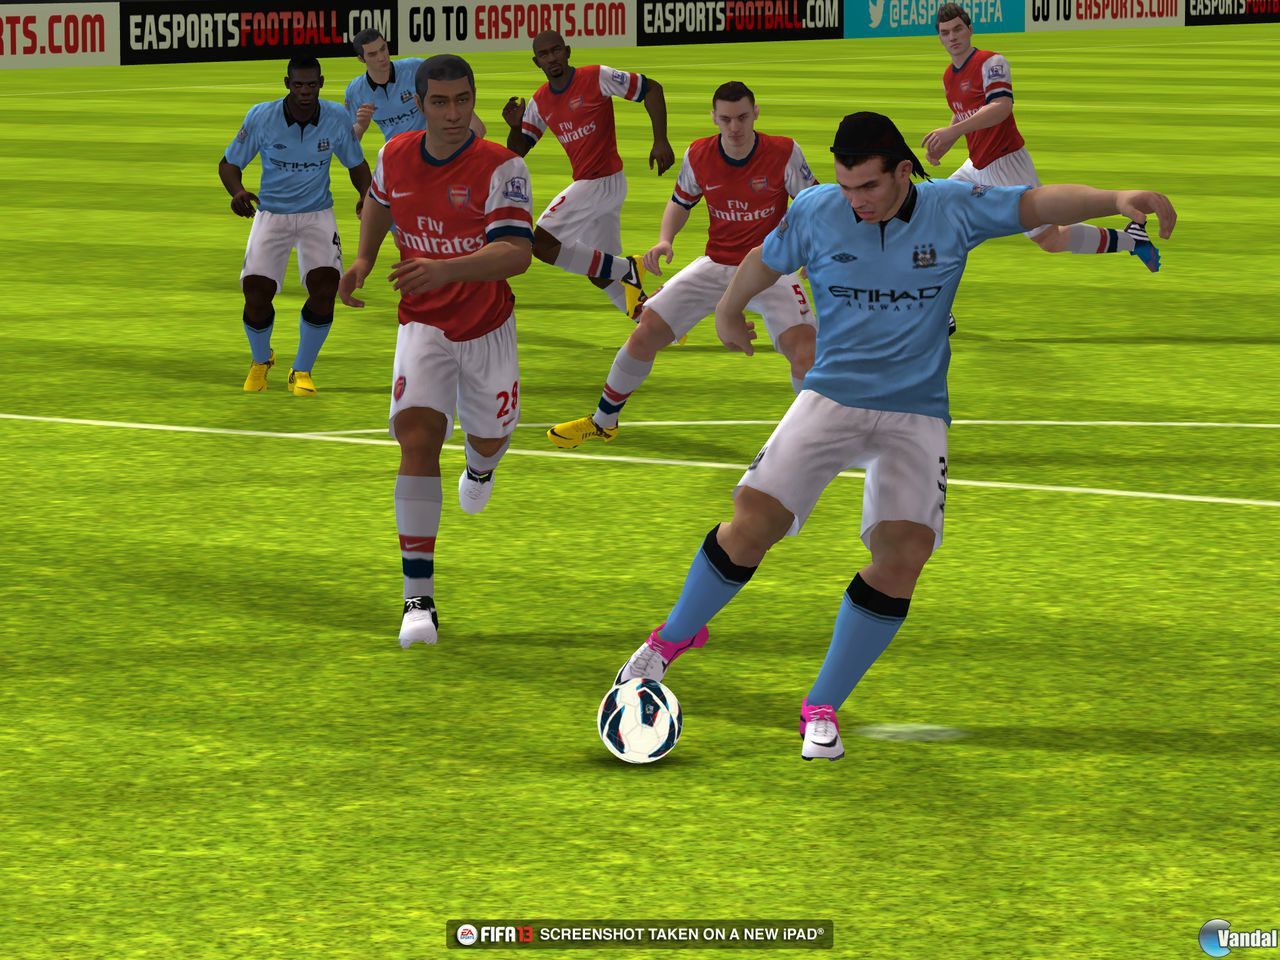 FIFA 13 se muestra en iOS